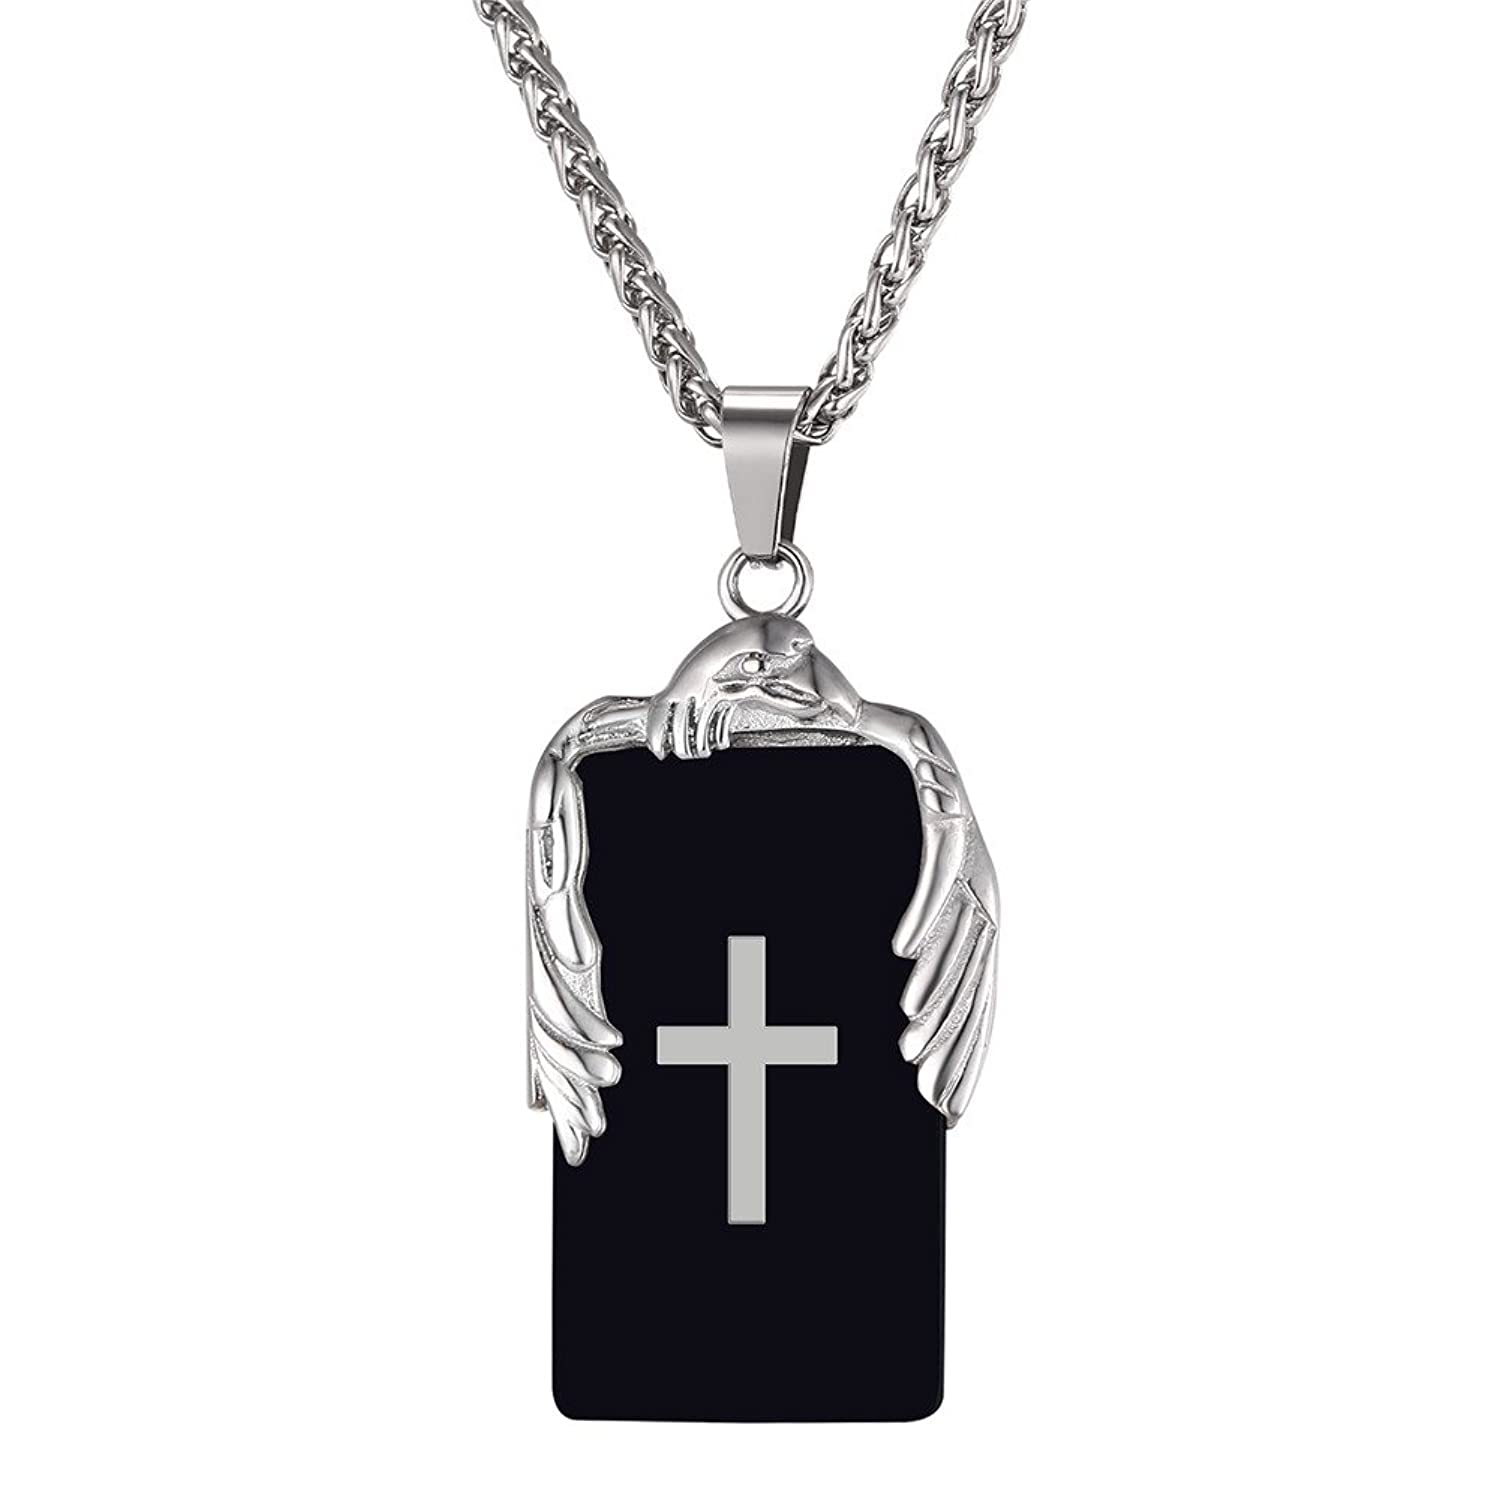 U7 Men Cool Eagle Cross Engraved Pendant with Stainless Steel Chain 22